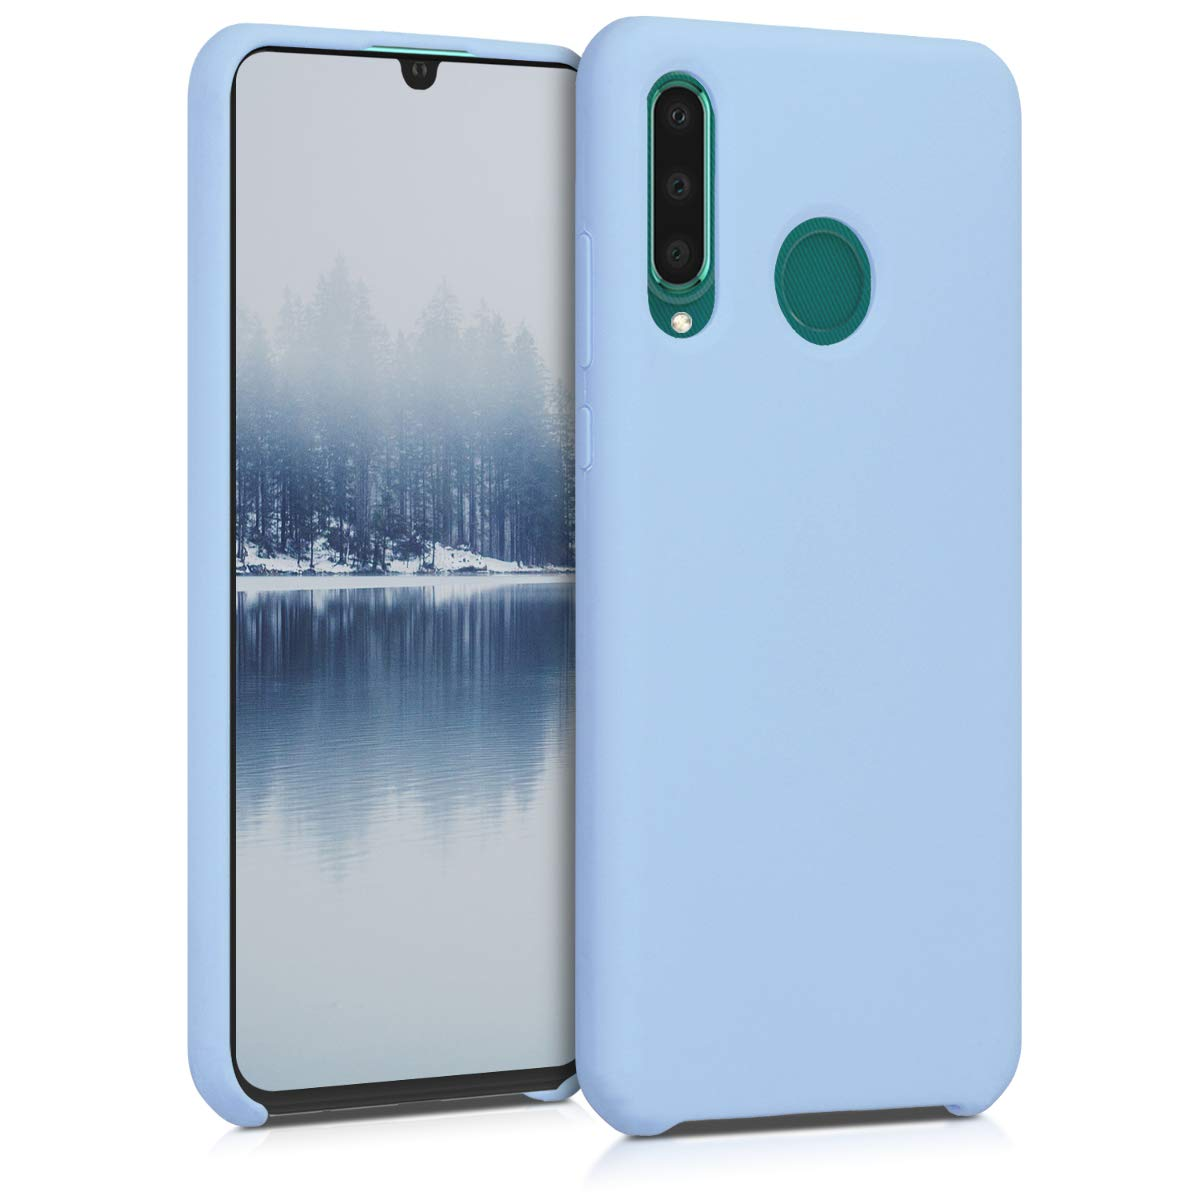 kwmobile TPU Silicone Case Compatible with Huawei P30 Lite - Case Slim Protective Phone Cover with Soft Finish - Light Blue Matte